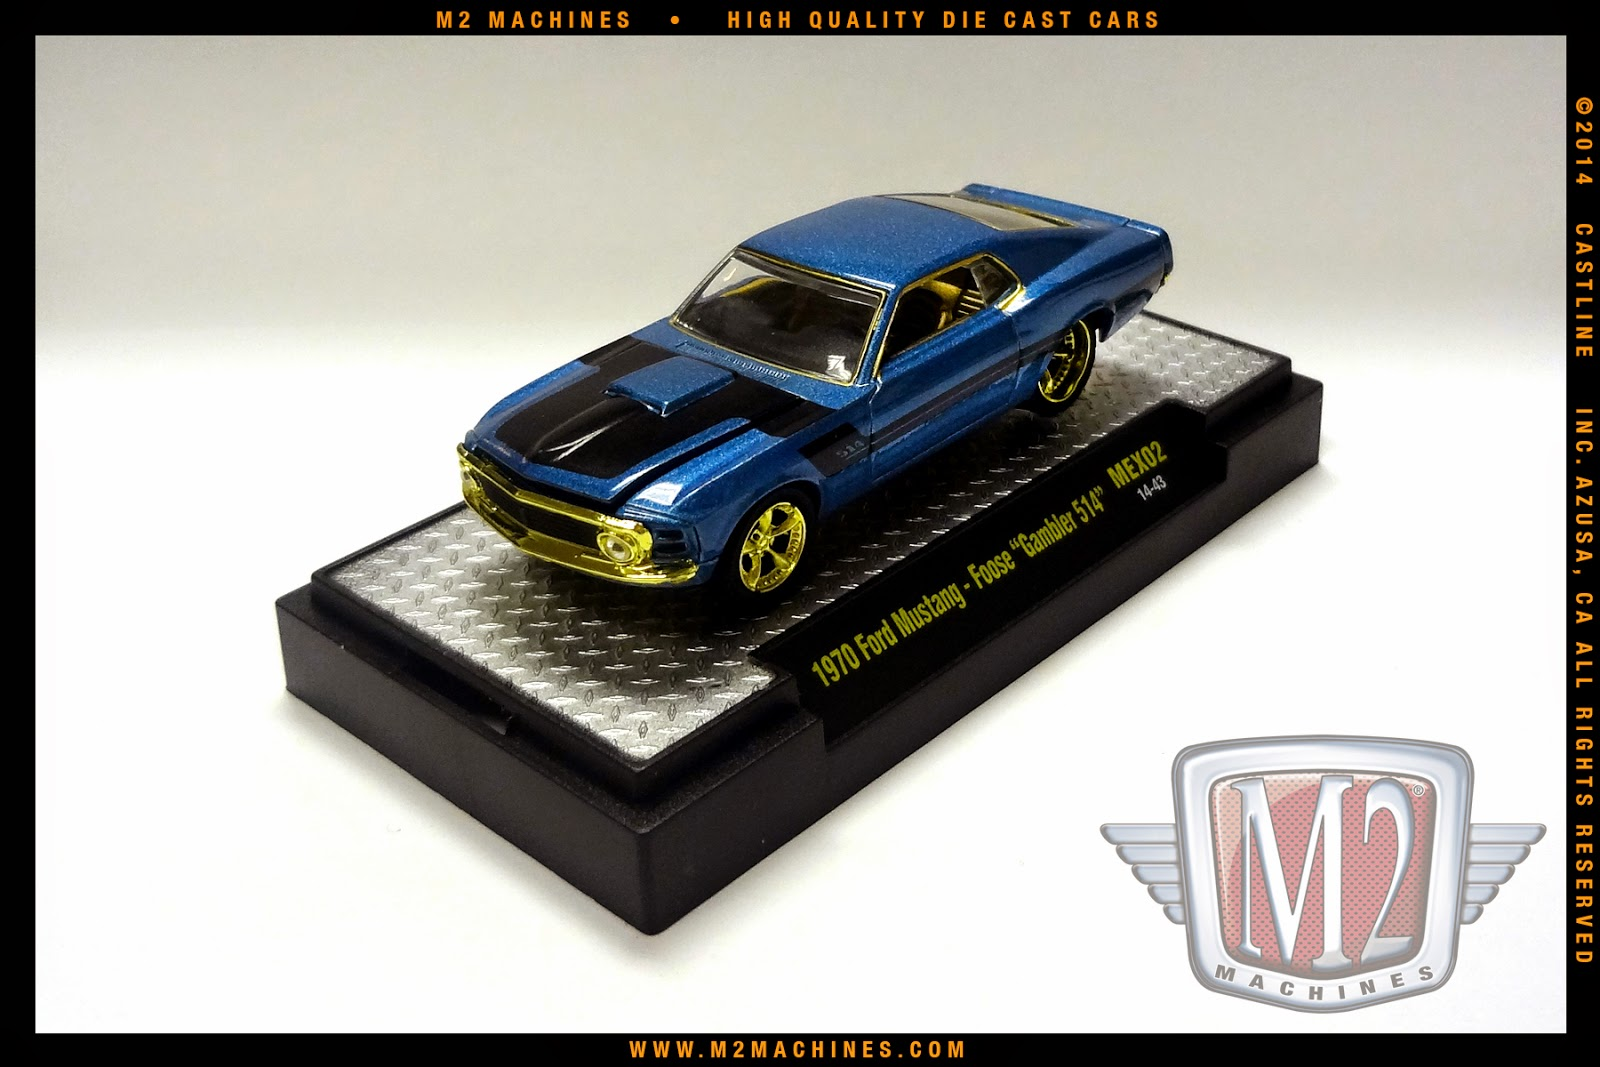 66584b2ef2da9 1970 Foose Gambler 514 Ford Mustang is painted Coastal Blue Pearl with flat  black stripes. The interior is Gold and the wheels are gold chrome Foose  Nitrous ...